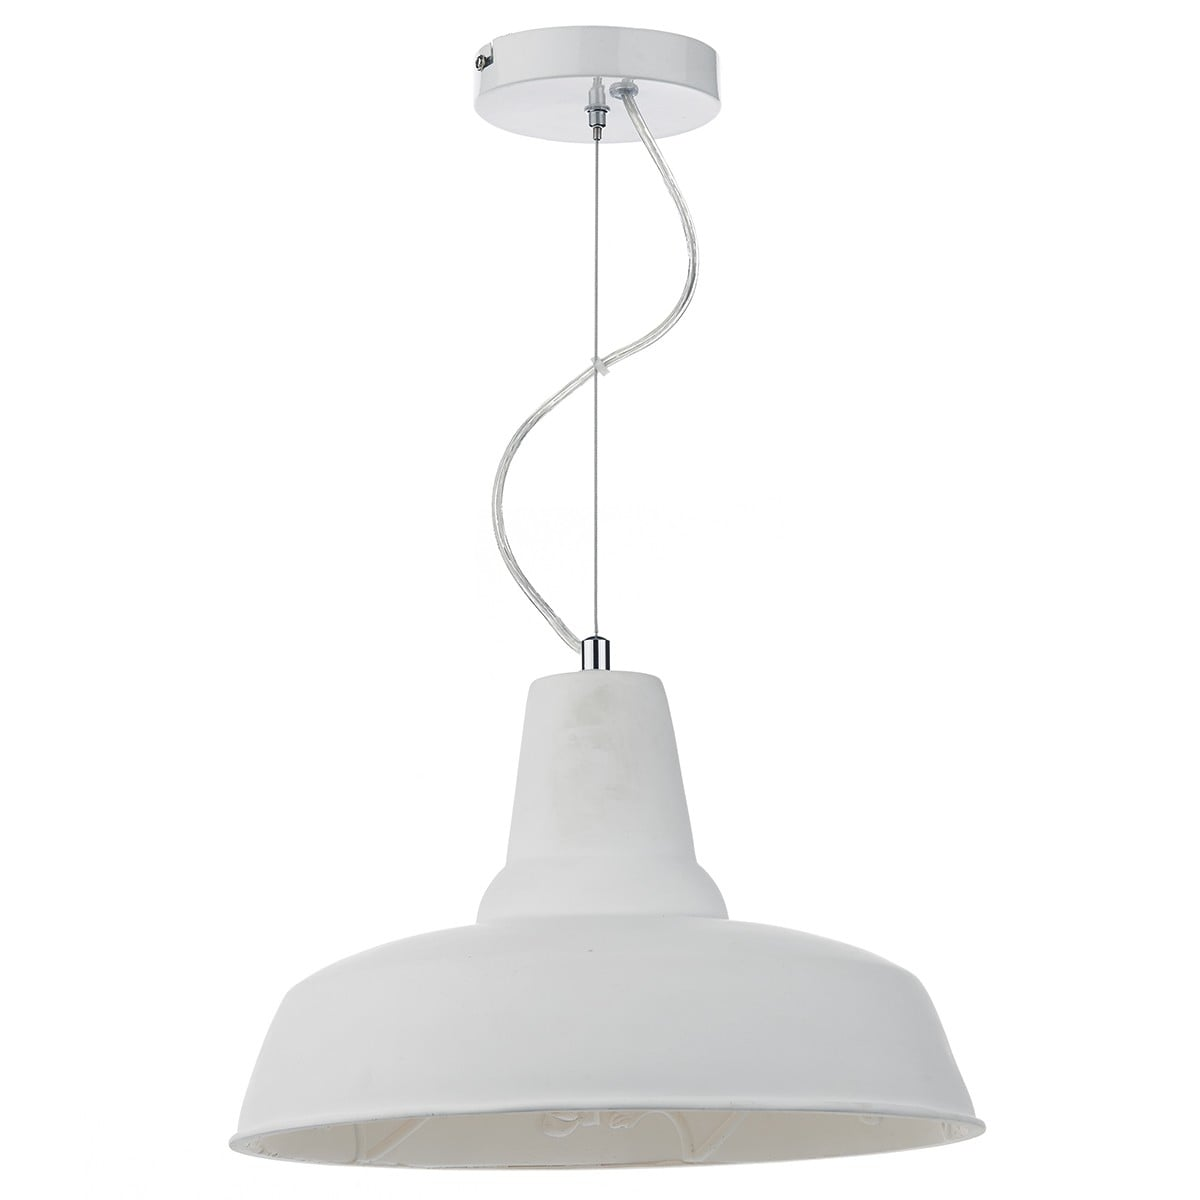 Dar SUS012 Susannah 1 Light Pendant in White.